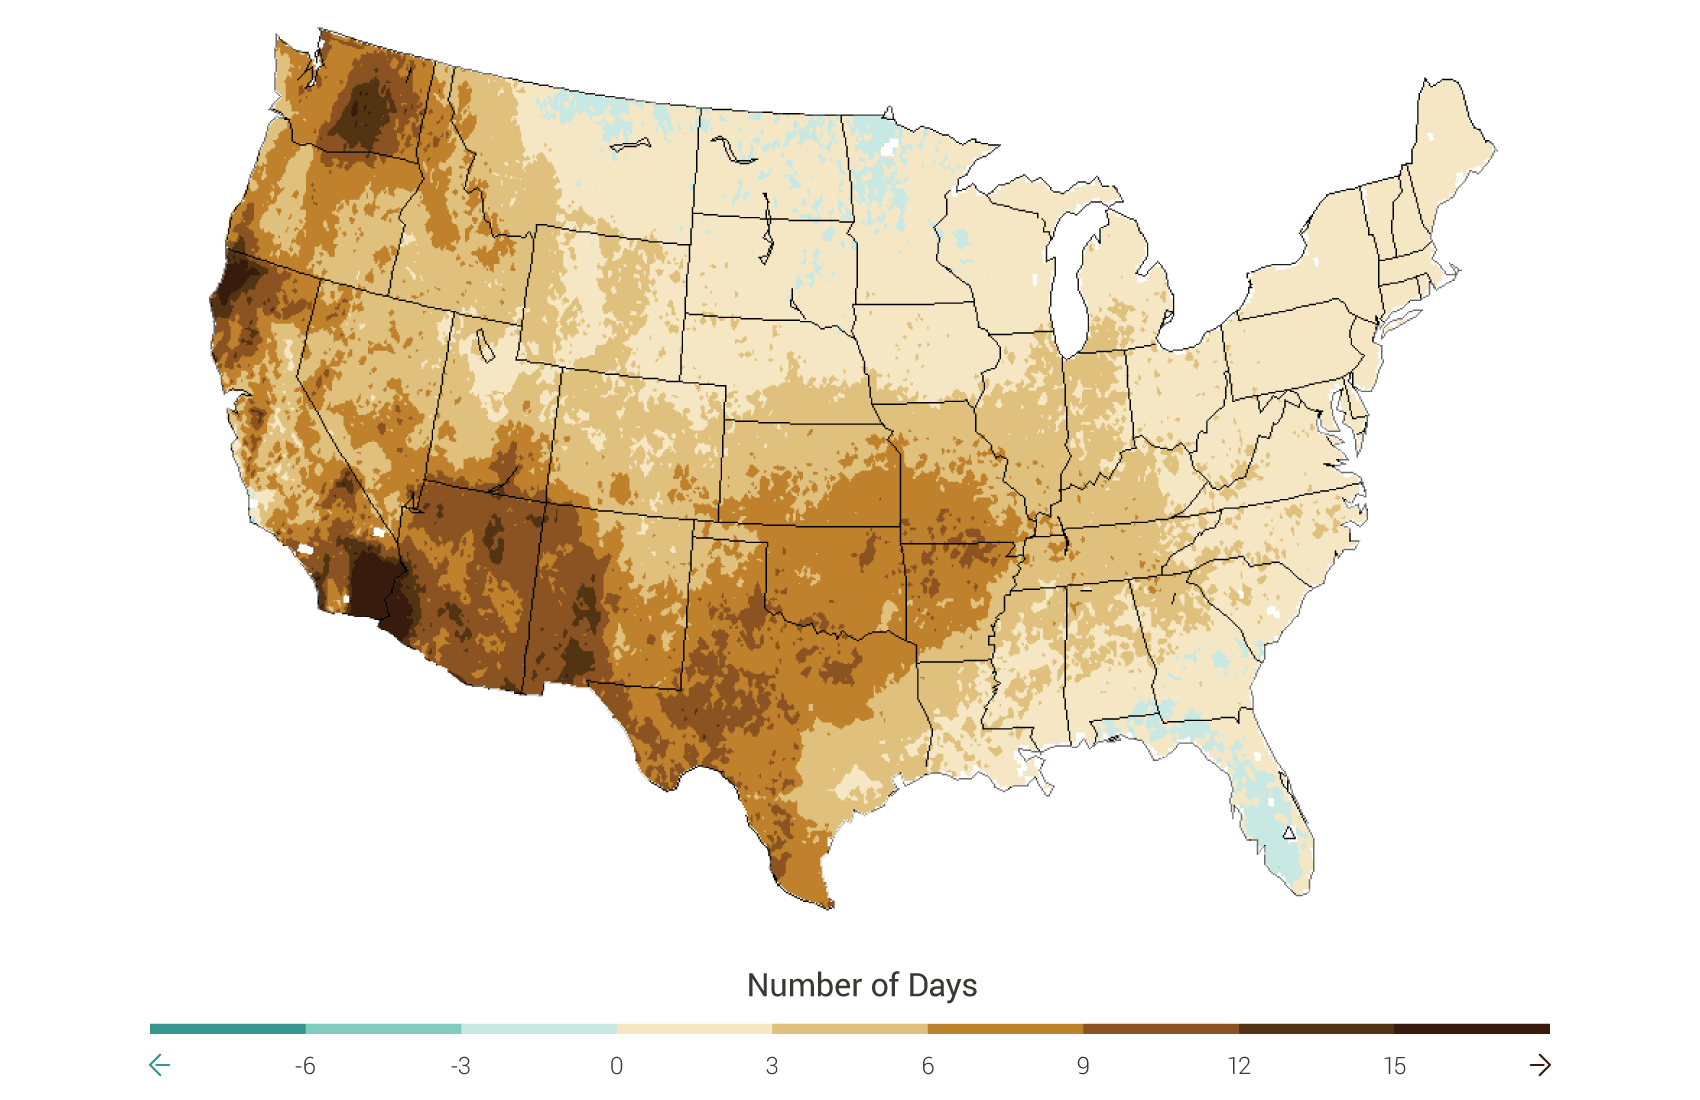 Change in Consecutive Dry Days